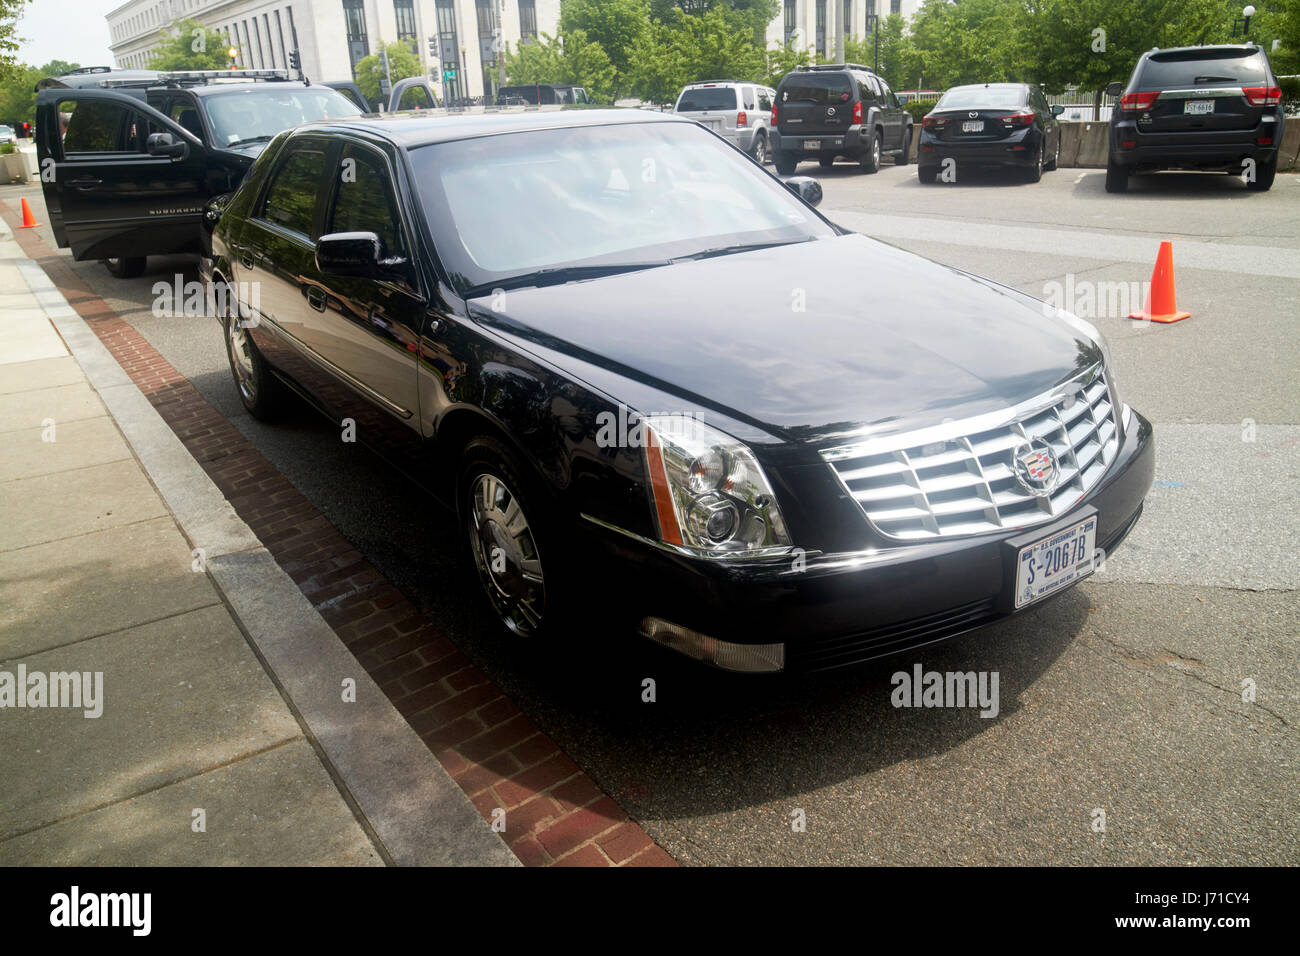 state department armored cadillac dts deville sedan vehicle Washington DC USA - Stock Image